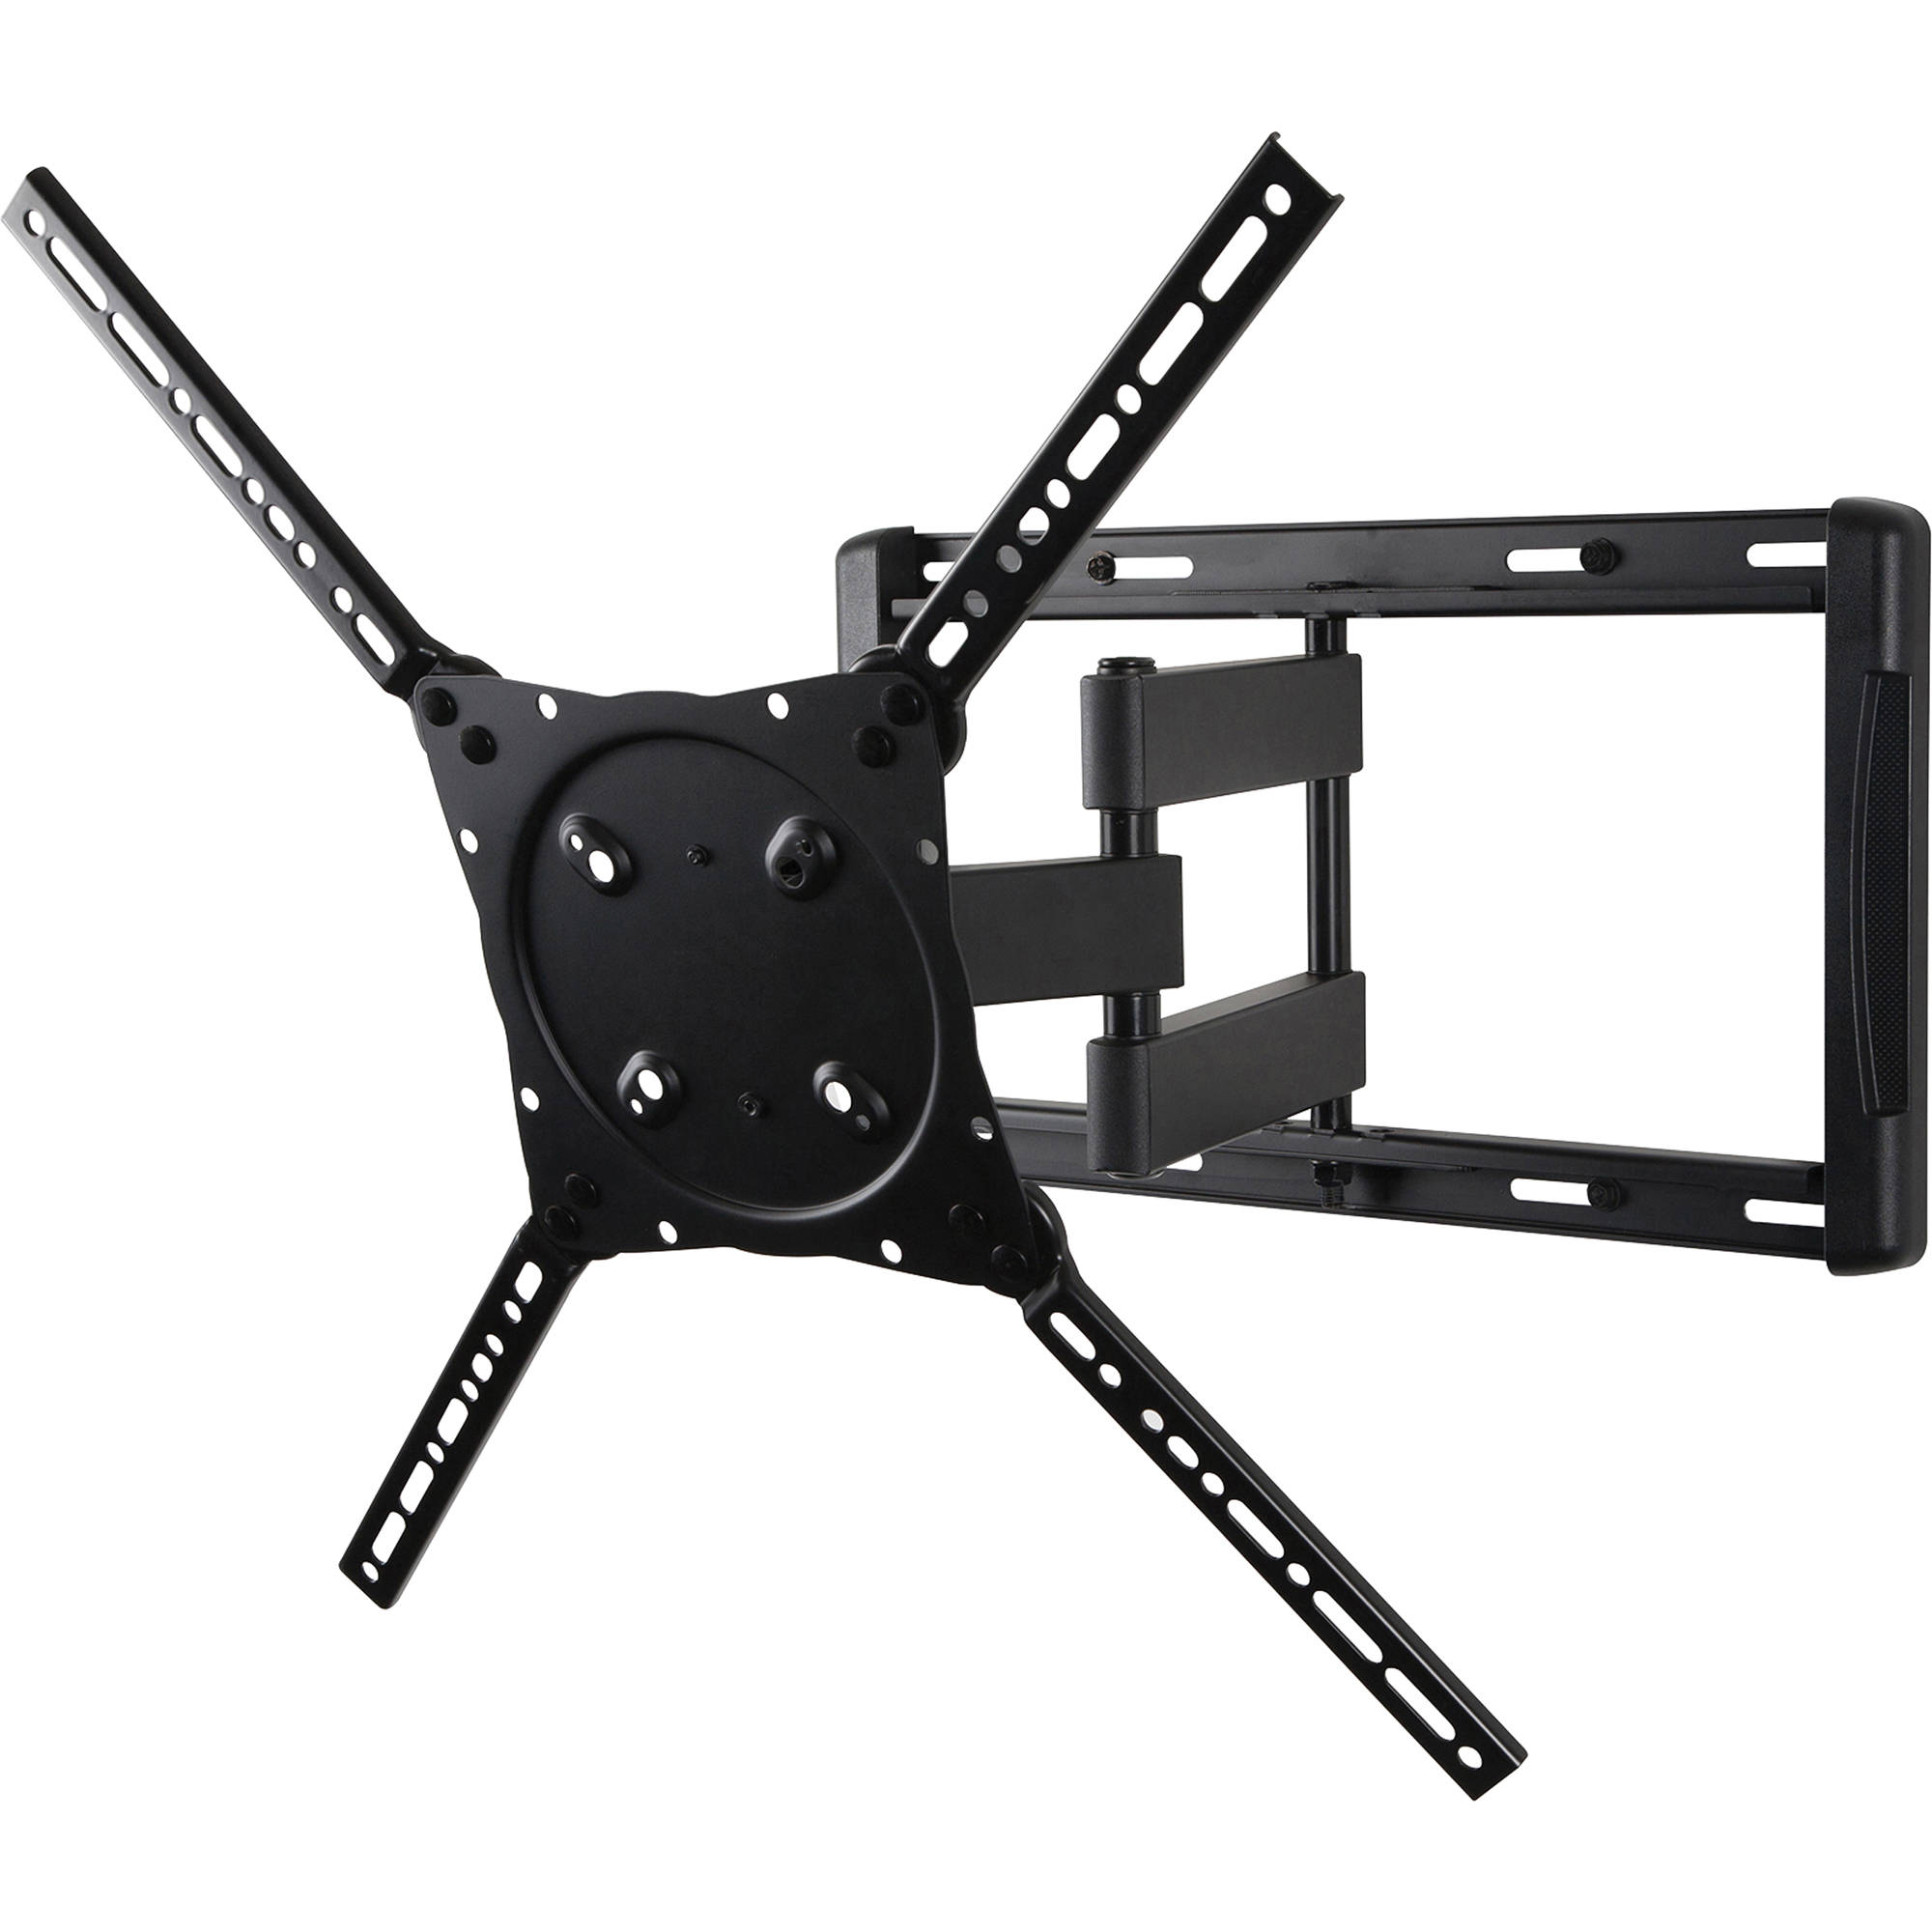 peerless av etalu full motion wall mount for 42 to etalu new b h. Black Bedroom Furniture Sets. Home Design Ideas